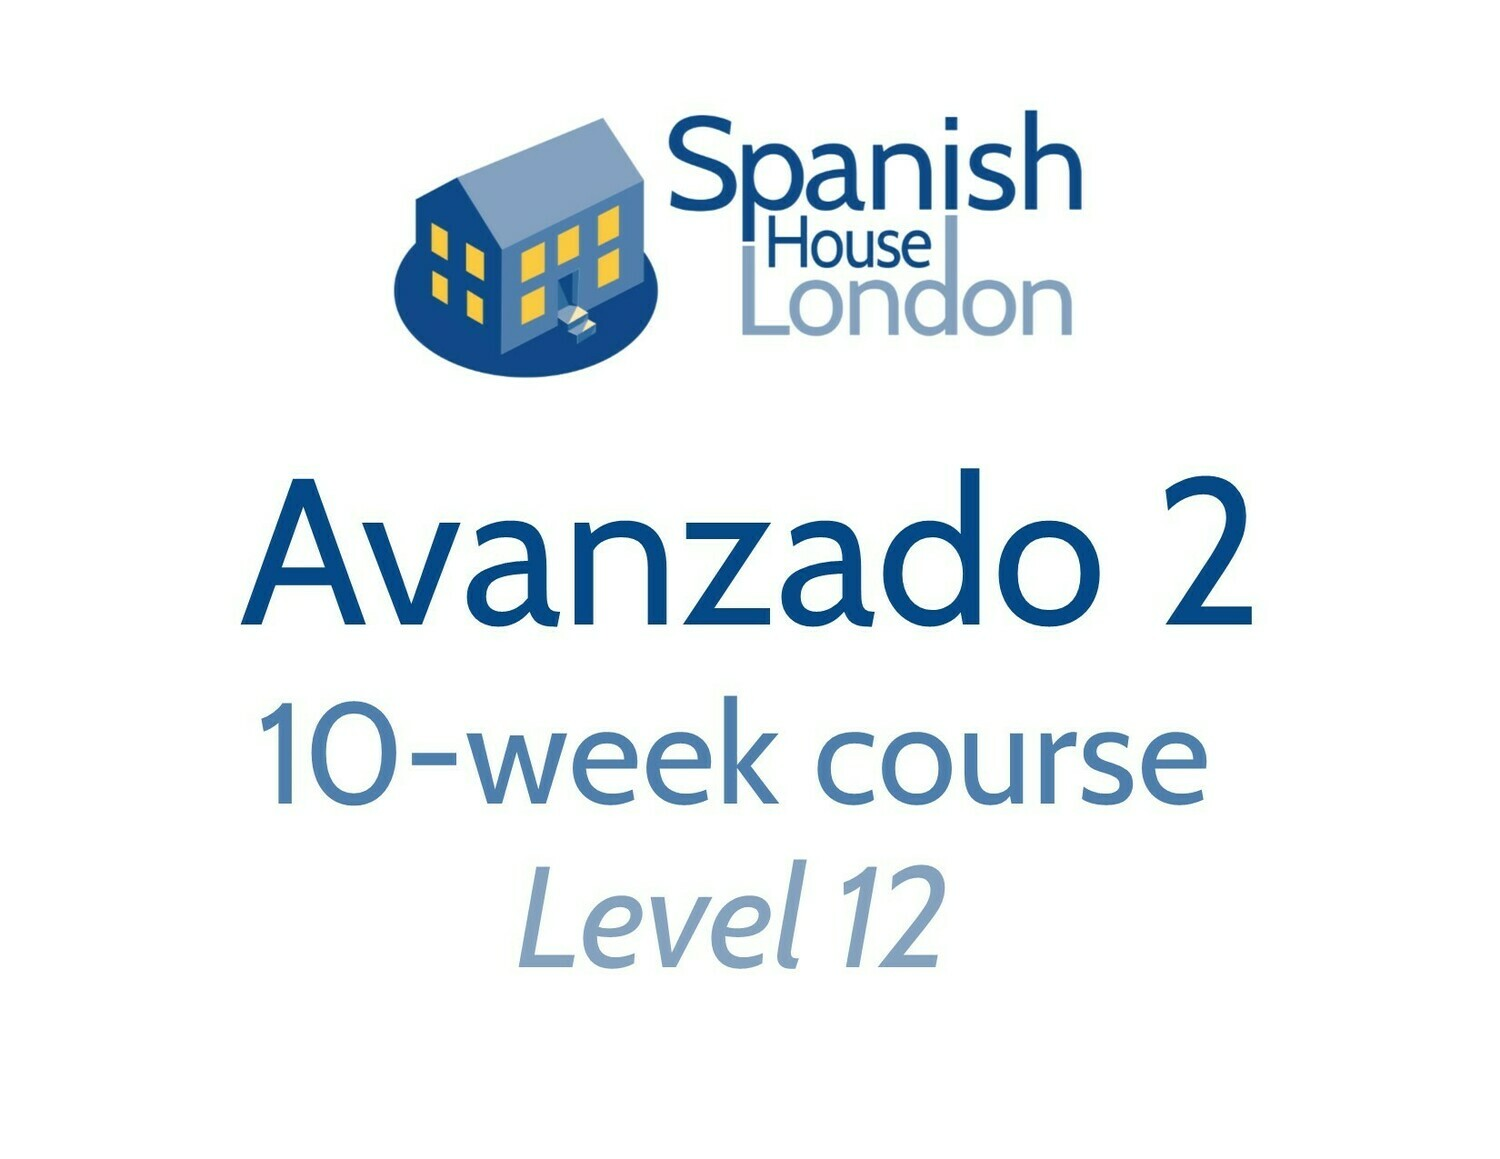 Avanzado 2 Course starting on 19th November at 7.30pm in Clapham North